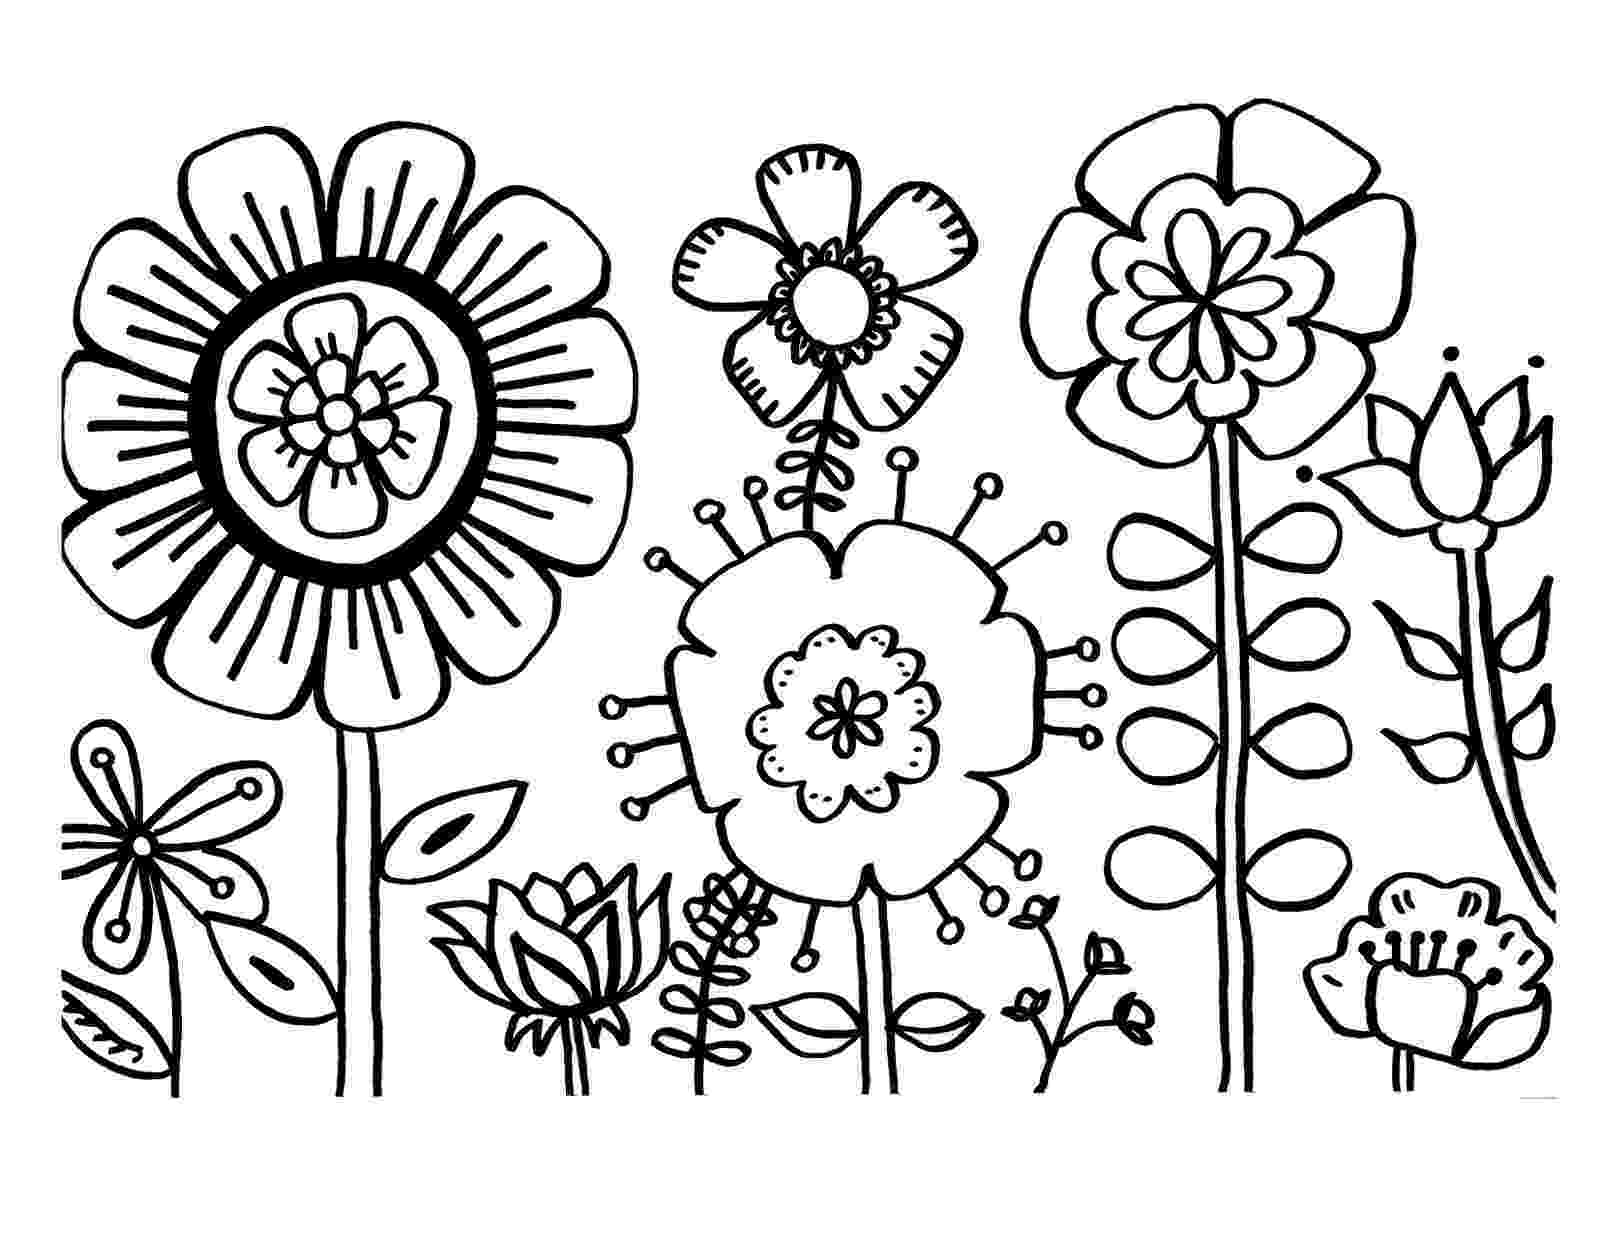 colouring pictures of plants free printable flower coloring pages for kids best plants pictures of colouring